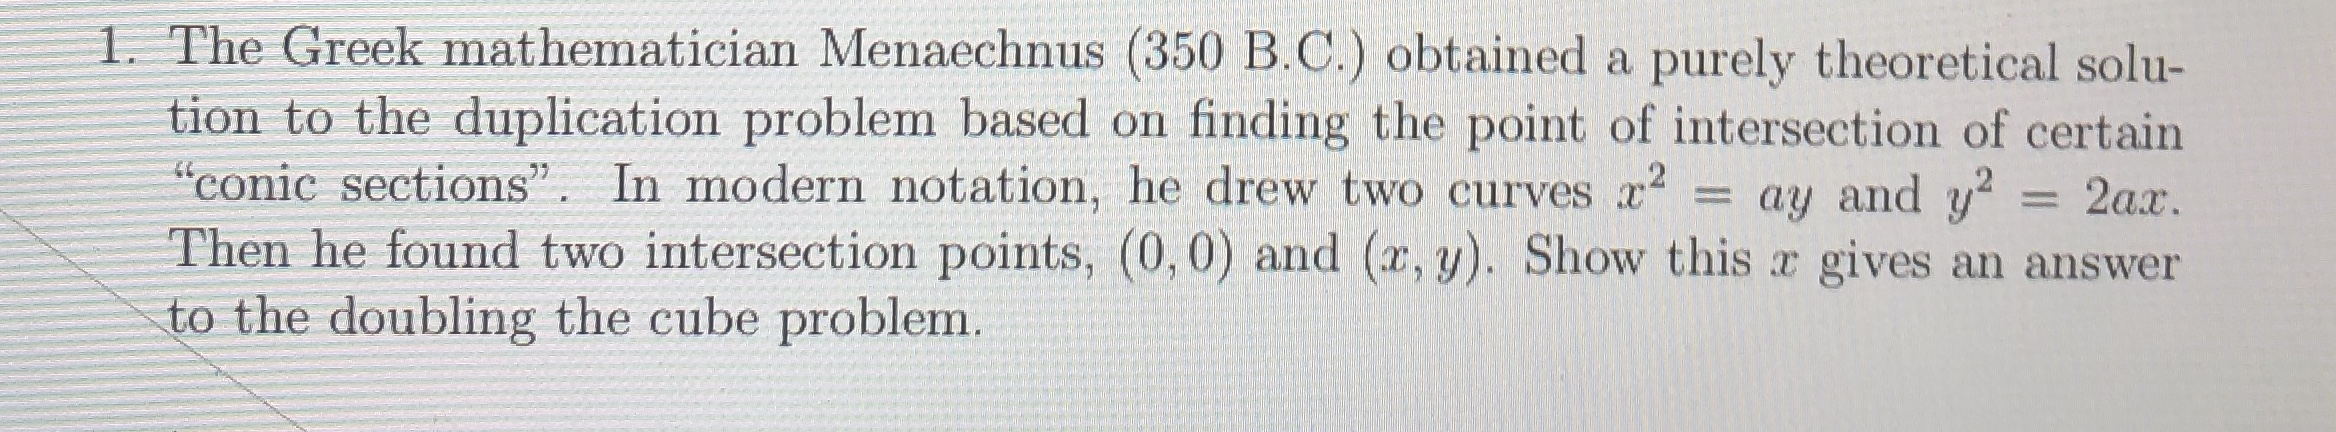 """1. The Greek mathematician Menaechnus (350 B.C.) obtained a purely theoretical solu- tion to the duplication problem based on """"conic sections"""". In modern notation, he drew two curves x2 Then he found two intersection points, (0,0) and (x,y). Show this x gives an answer to the doubling the cube problem. finding the point of intersection of certain ay and y2 2ax."""